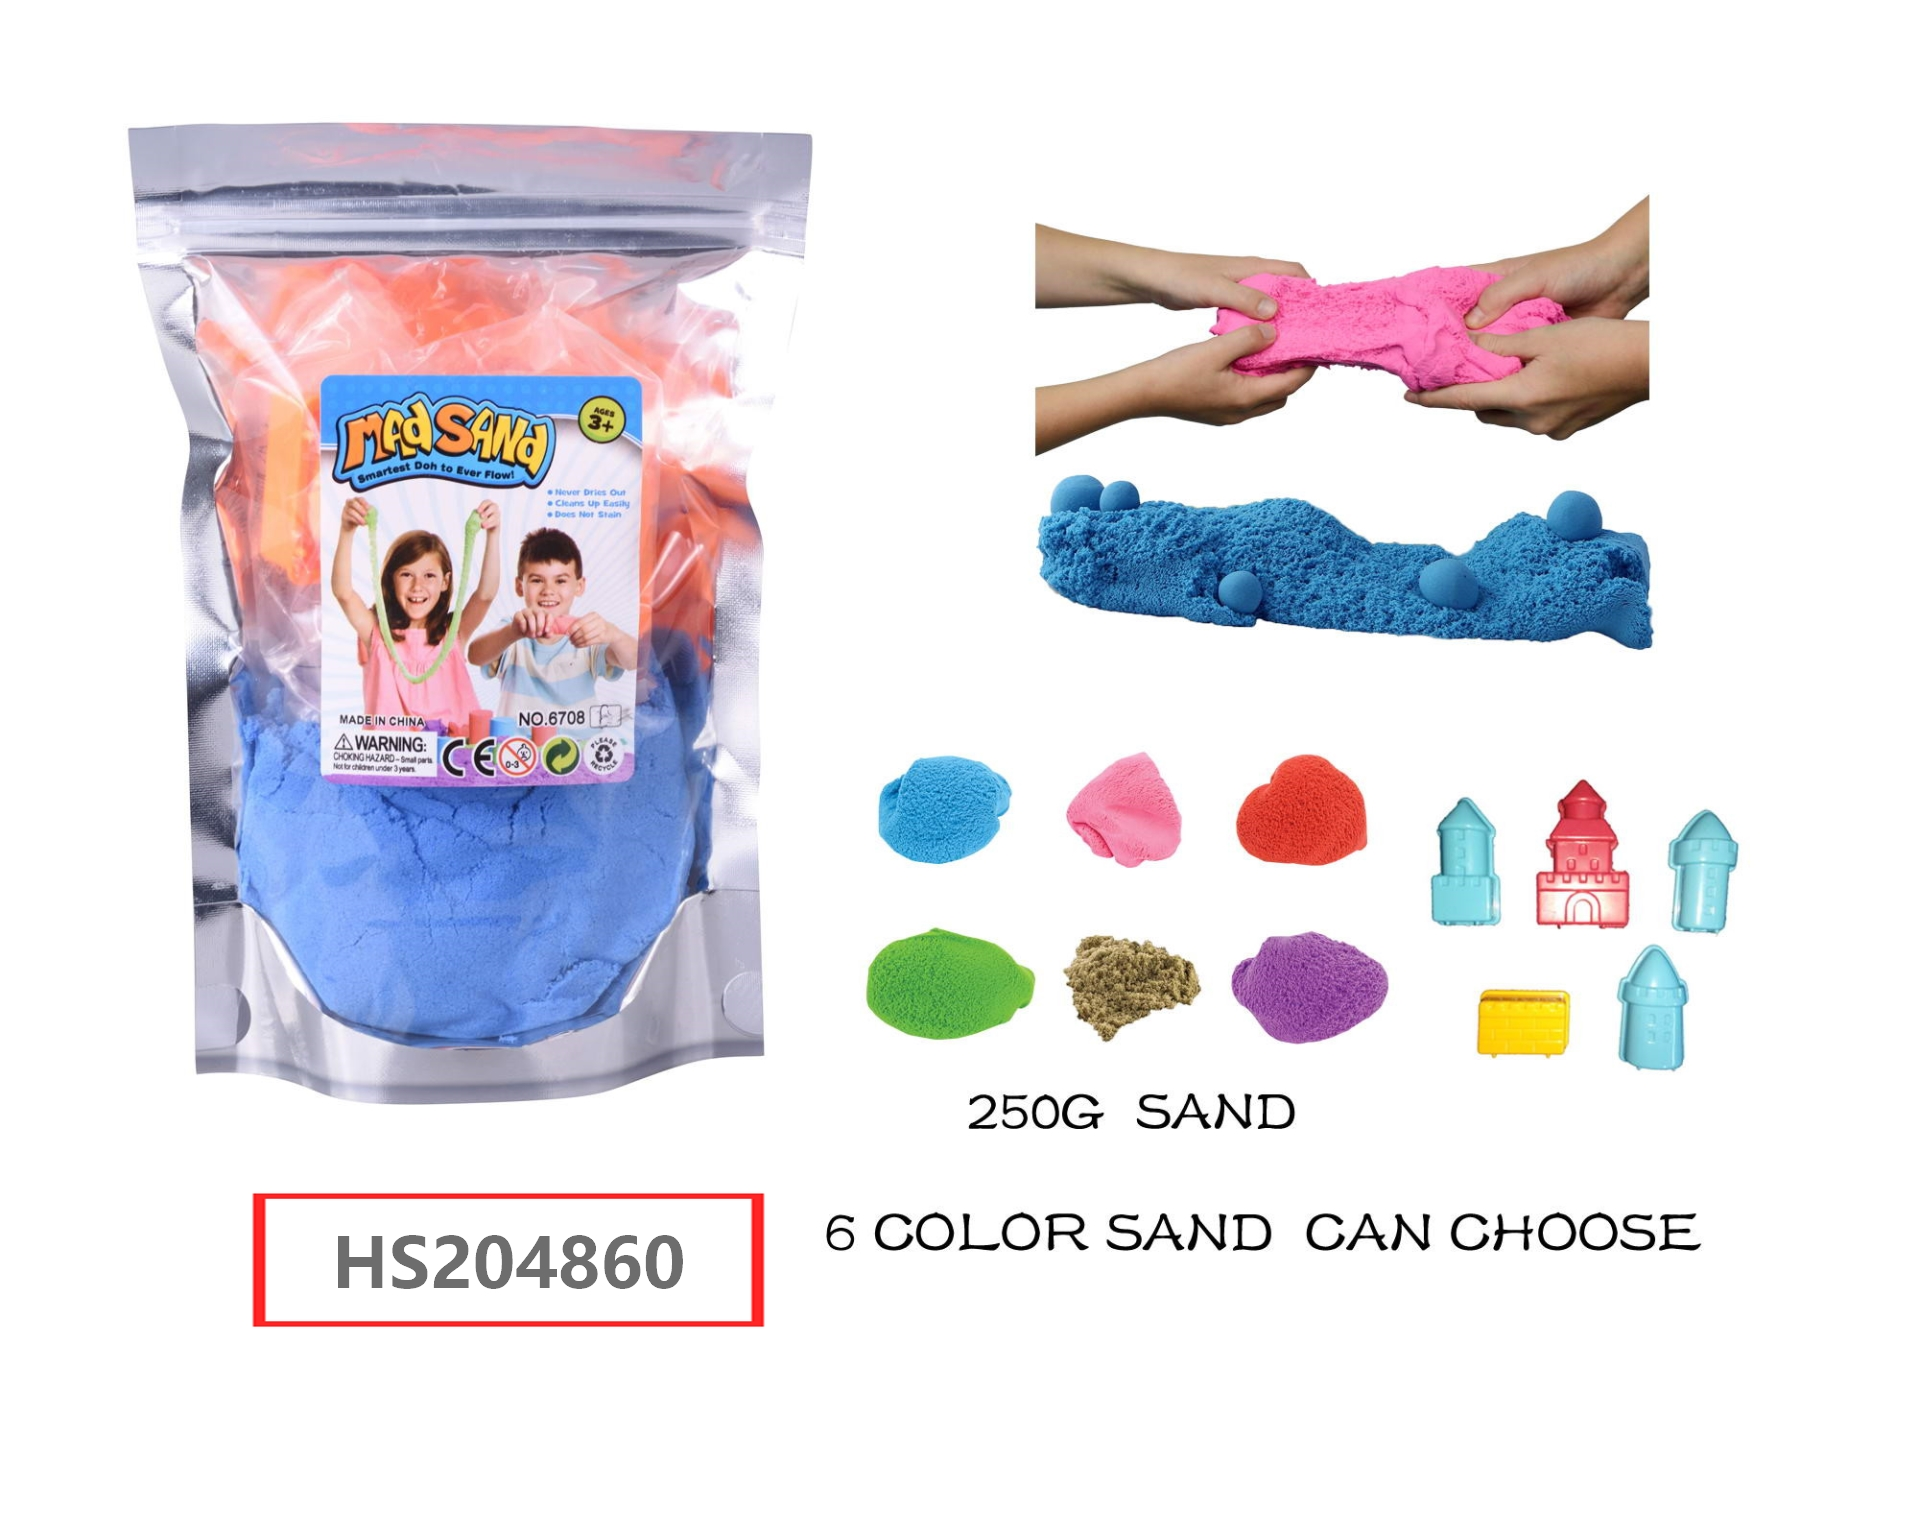 HS204860, Huwsin Toys, Educatioonal toy, DIY Mad sand